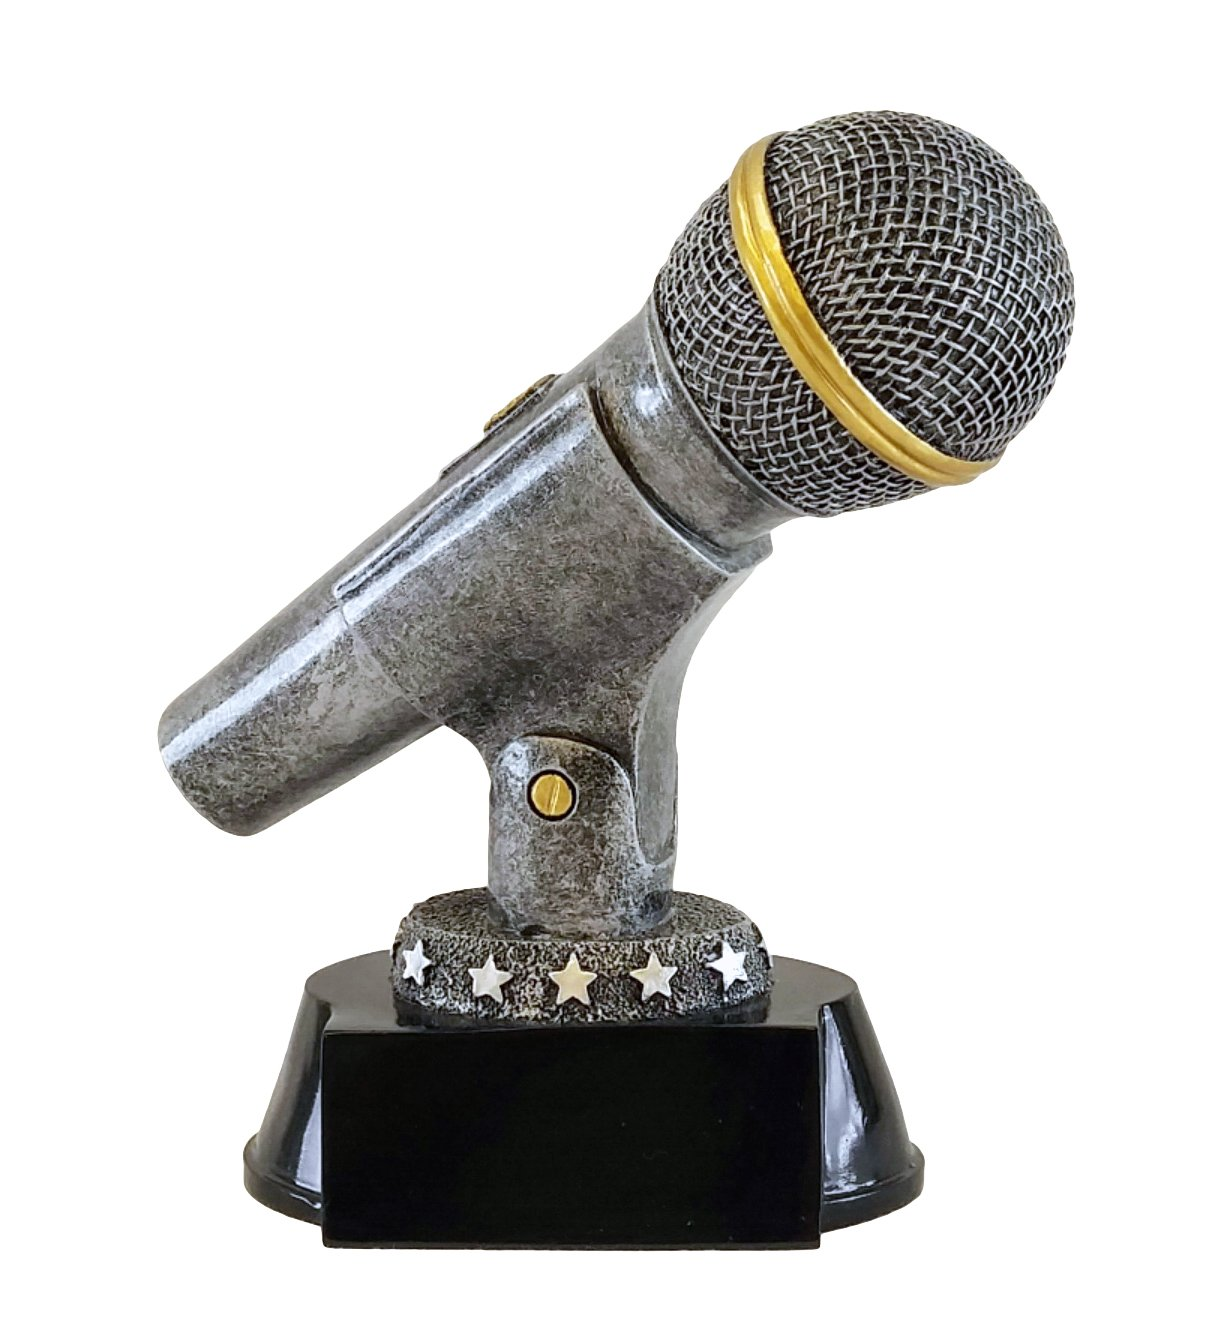 Decade Awards Microphone Trophy - Silver | Karaoke Singer DJ Announcer Mic Award | 6 Inch - Free Engraved Plate on Request Exclusive